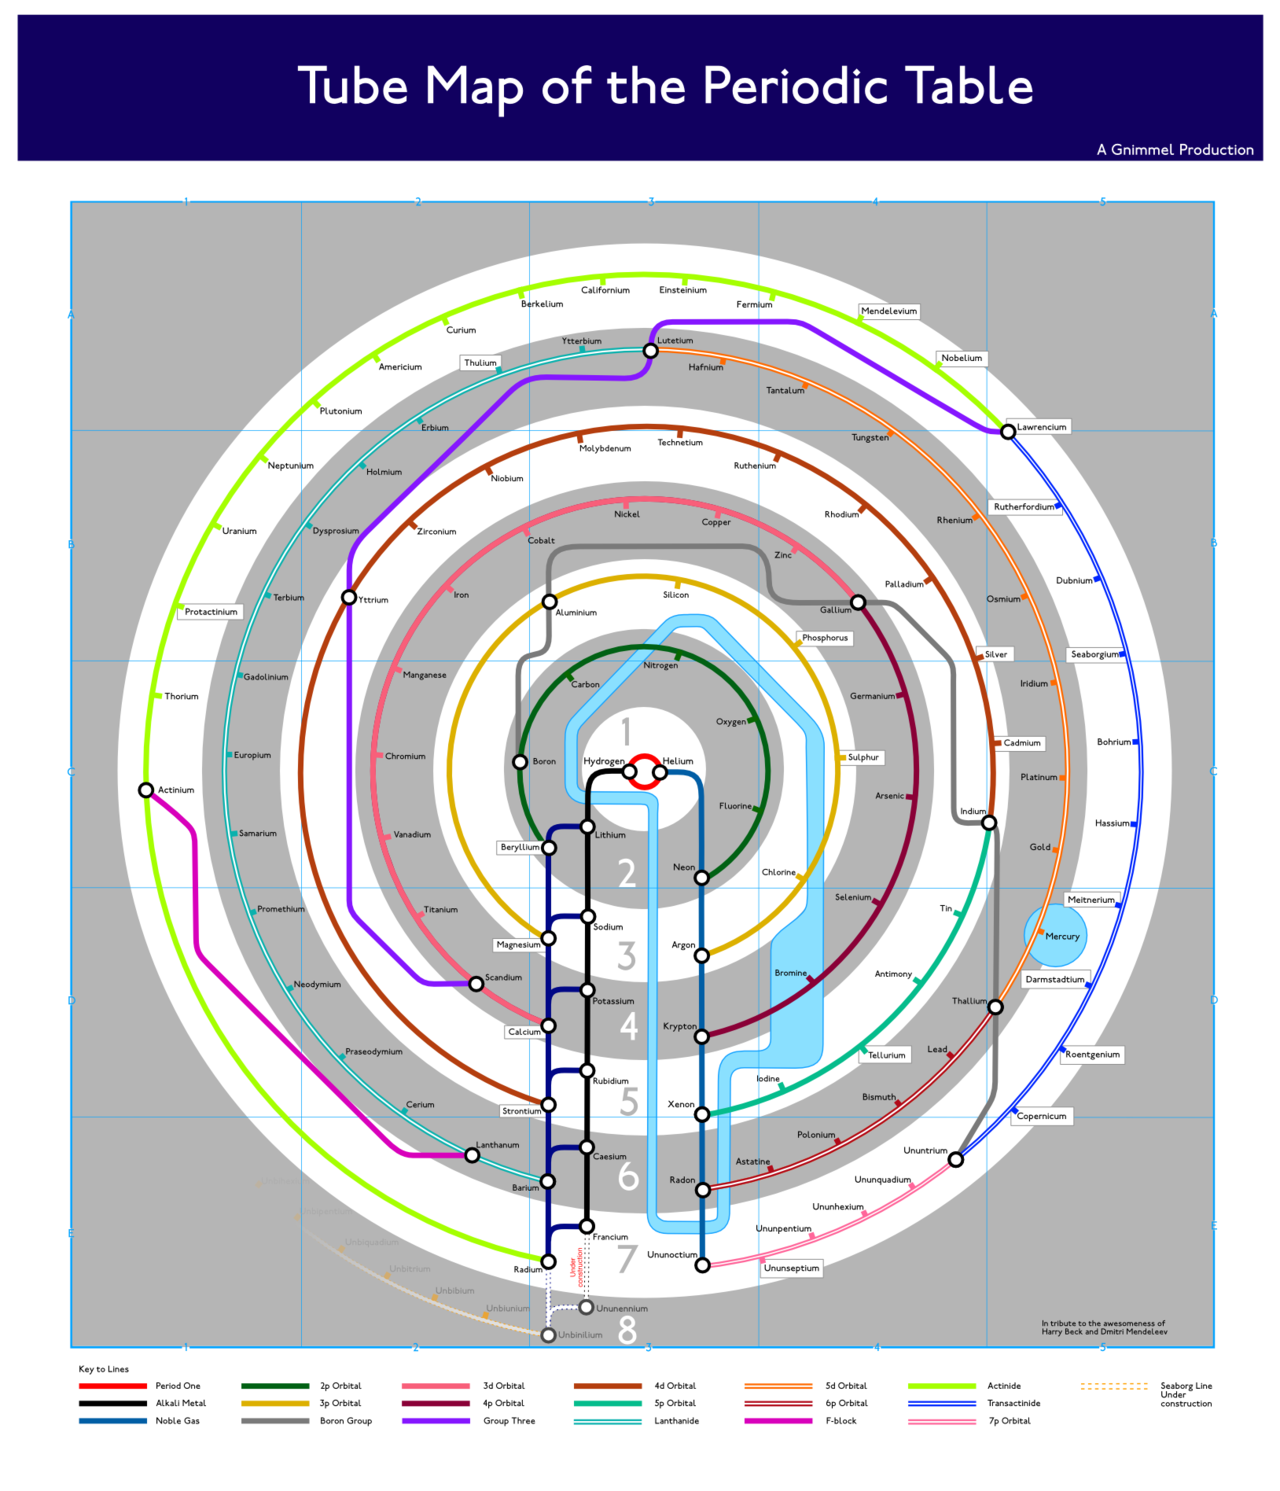 A tube map of the periodic table river delineates solidsgases a tube map of the periodic table river delineates solidsgasesliquids at gamestrikefo Choice Image